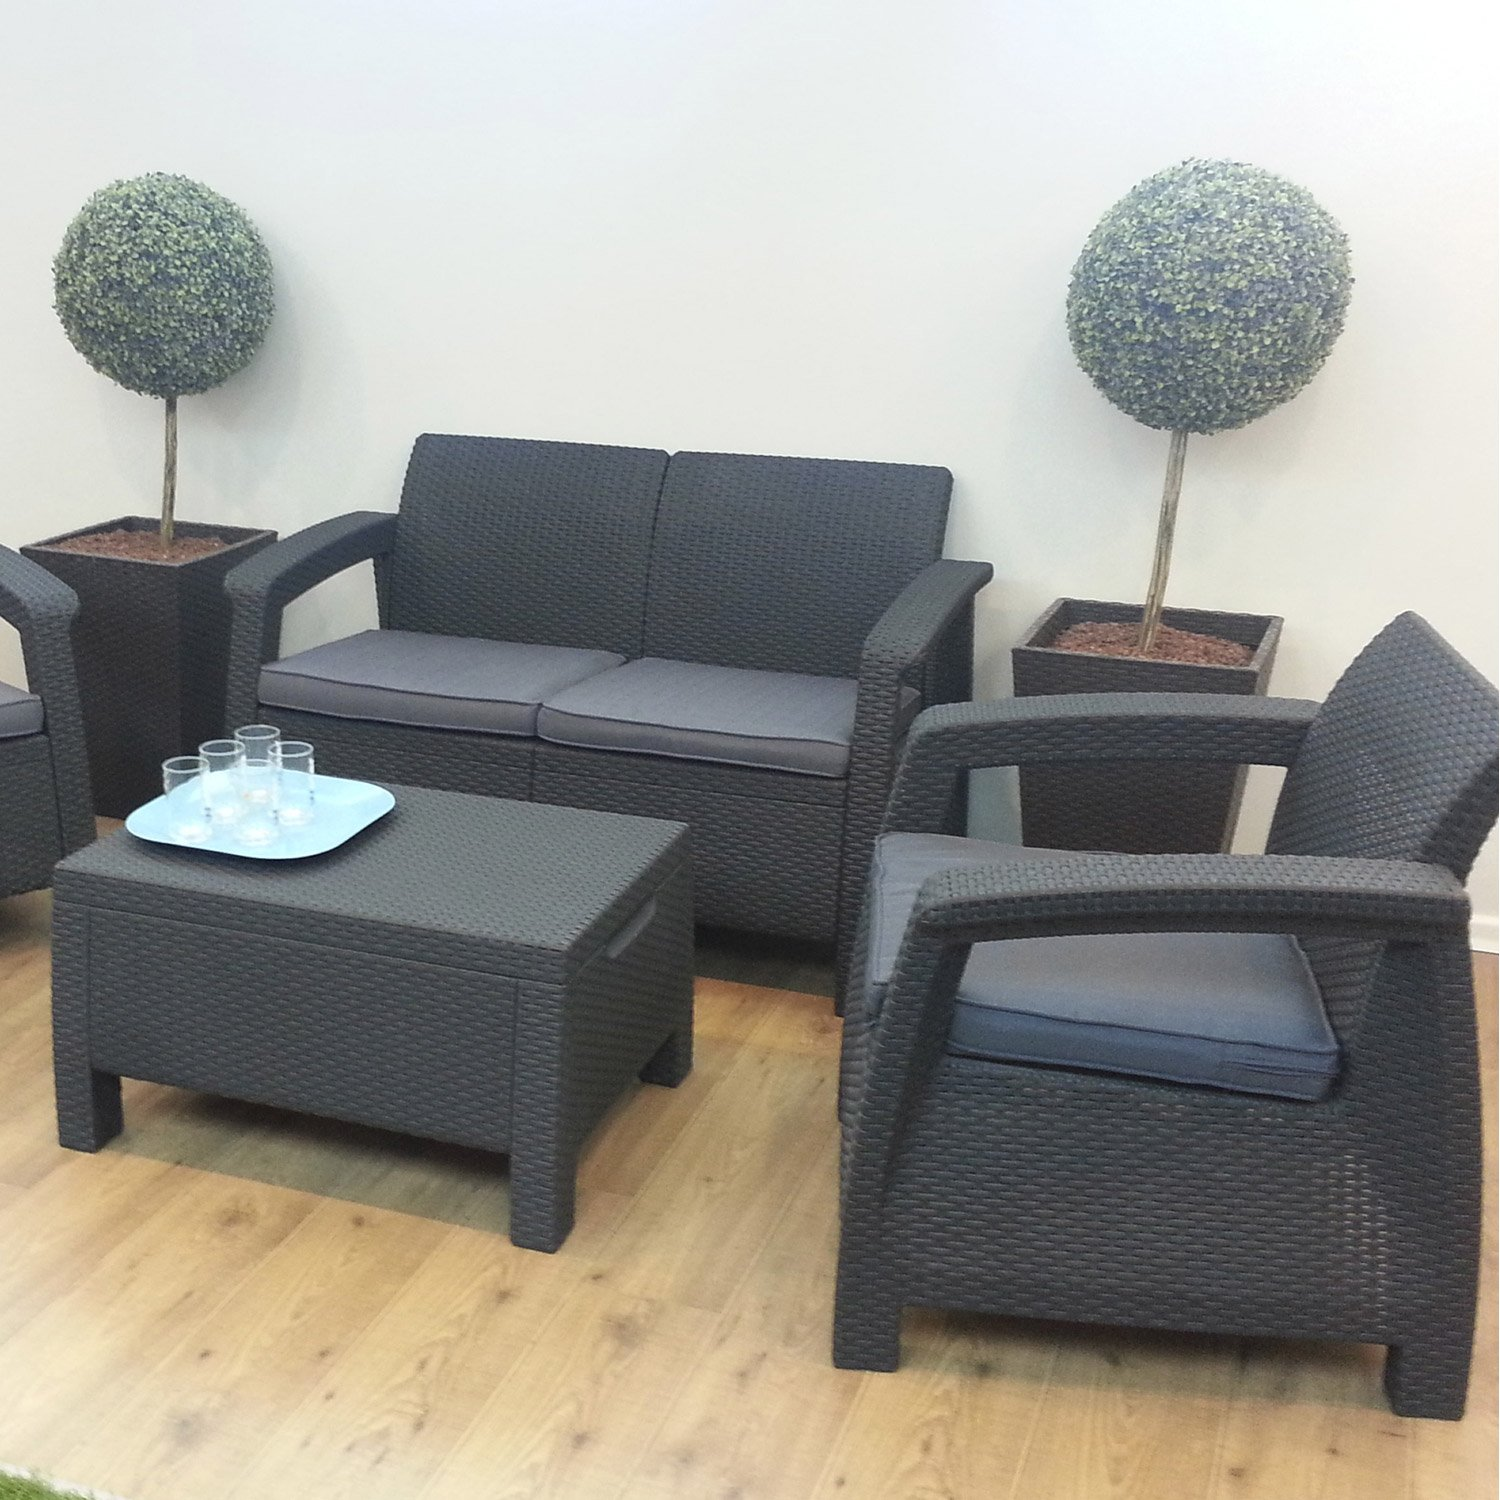 salon de jardin gris anthracite pas cher id es de d coration int rieure french decor. Black Bedroom Furniture Sets. Home Design Ideas